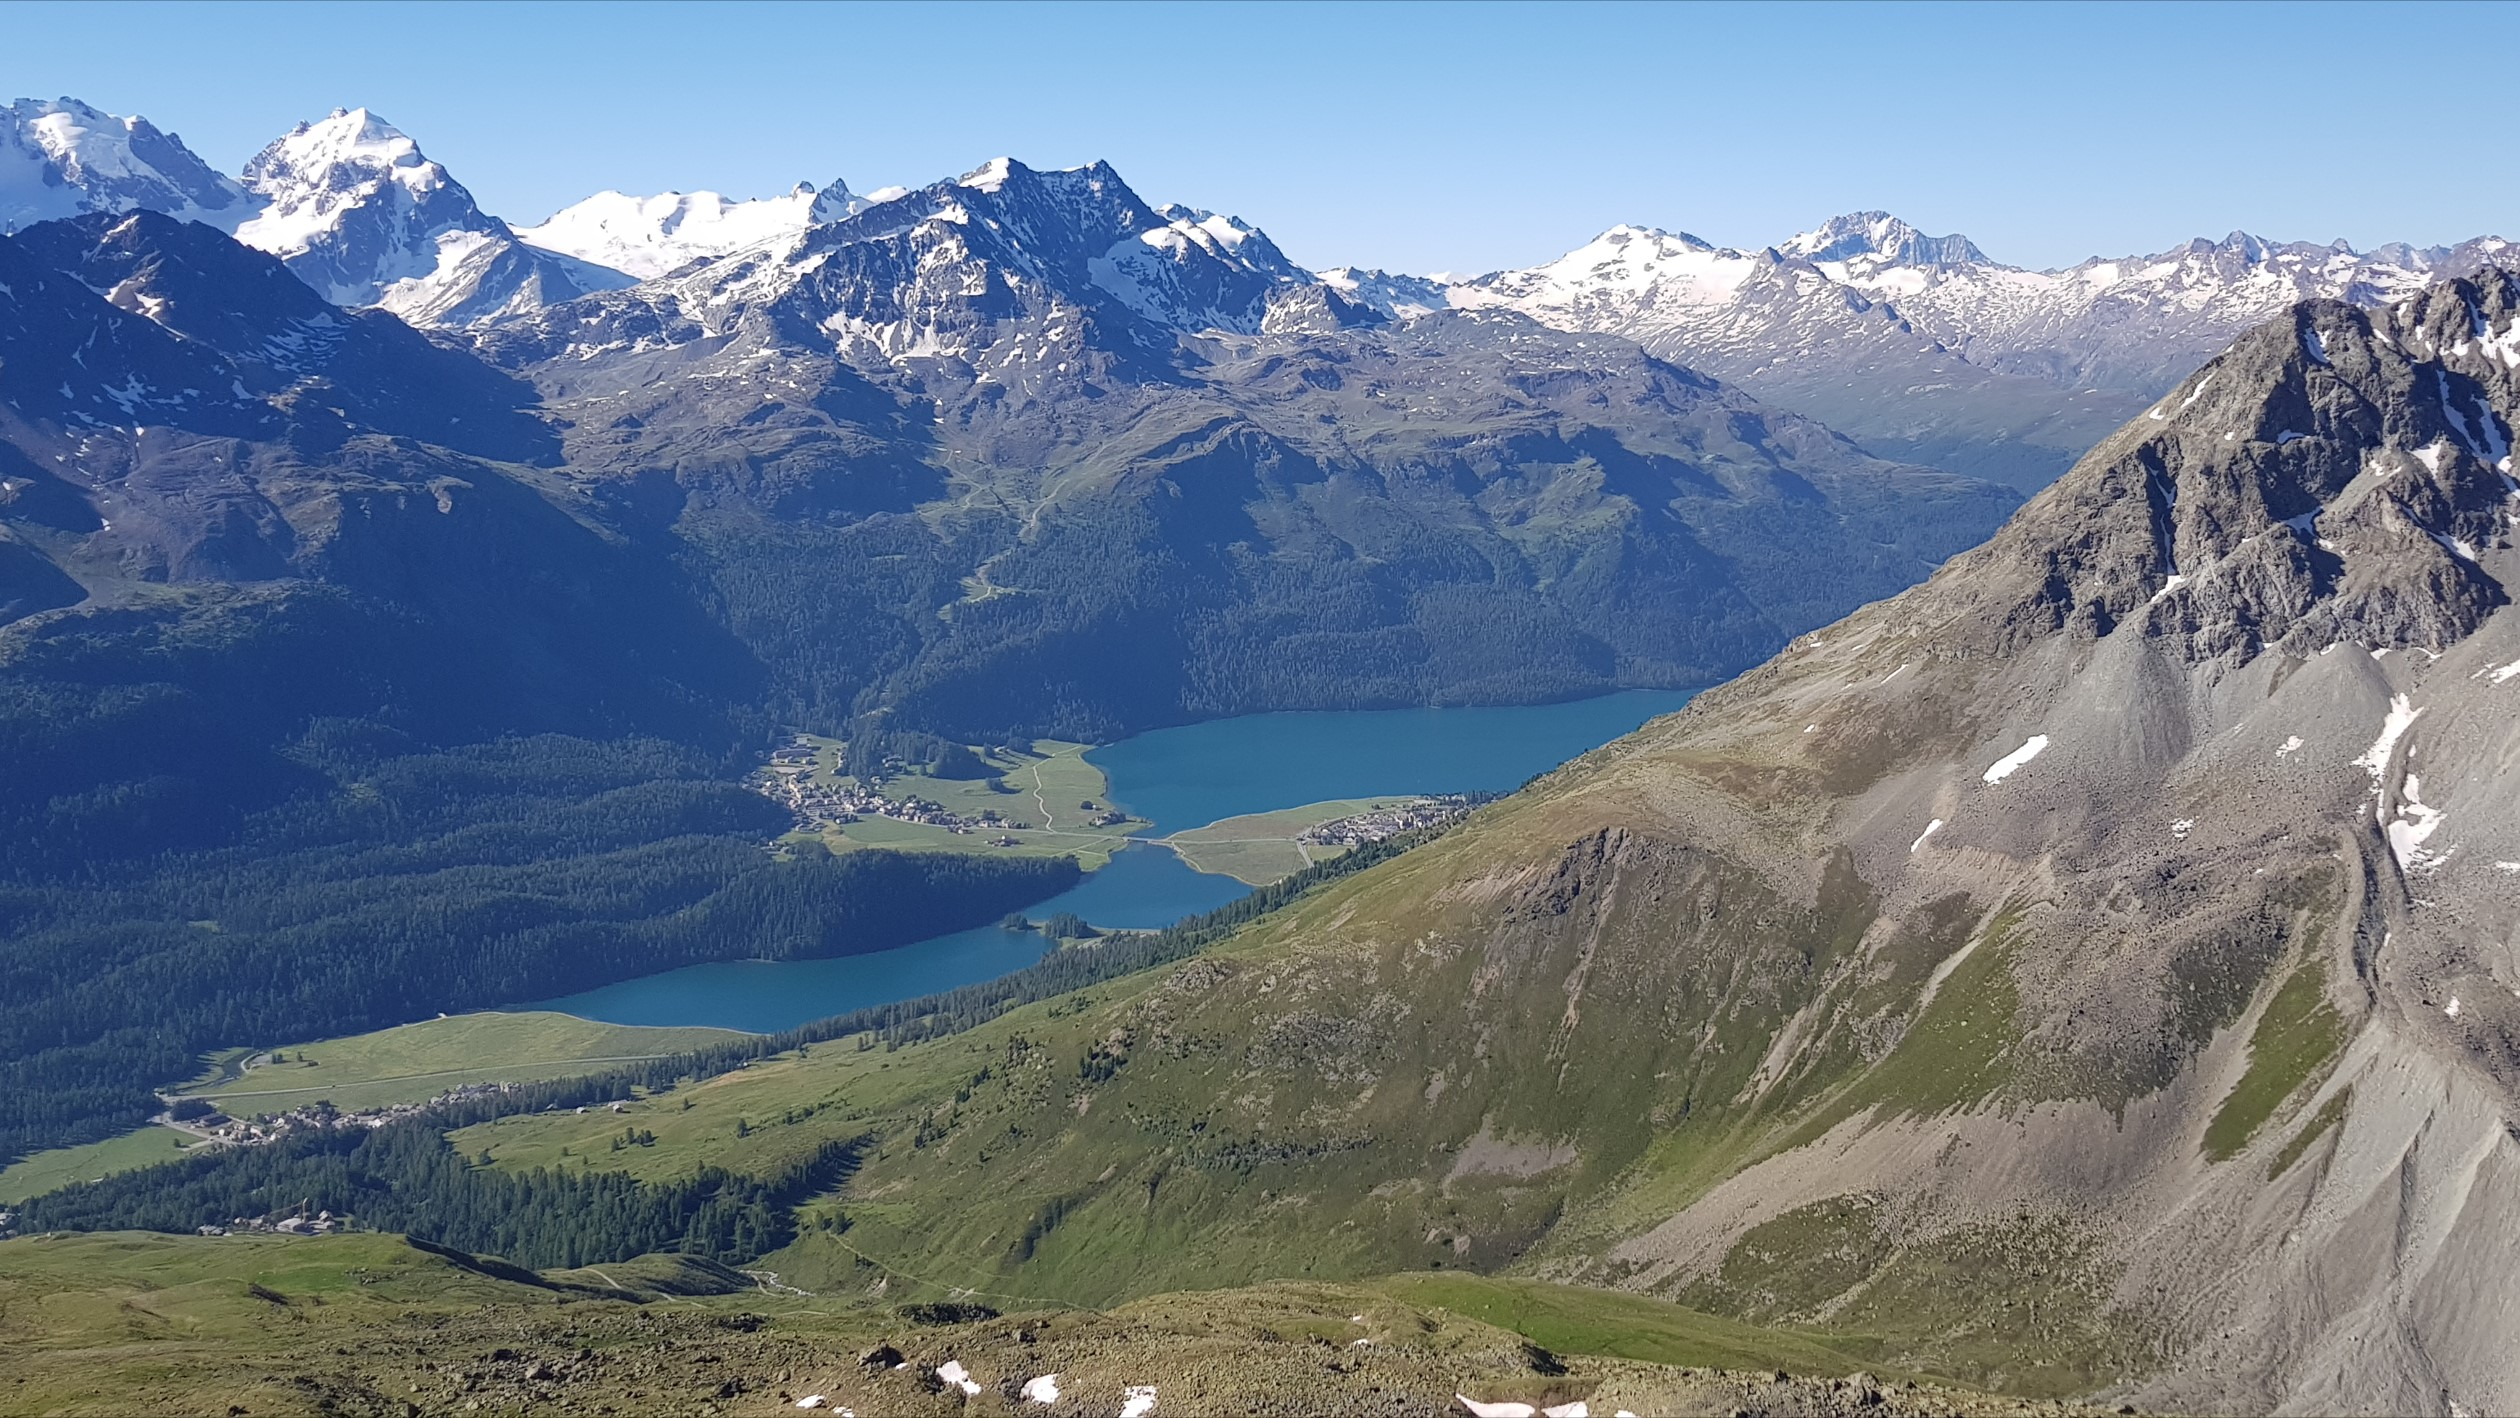 Engadine, St. Moritz, Piz Nair, view in direction Corvatsch with Surlej and Lake Silvaplana